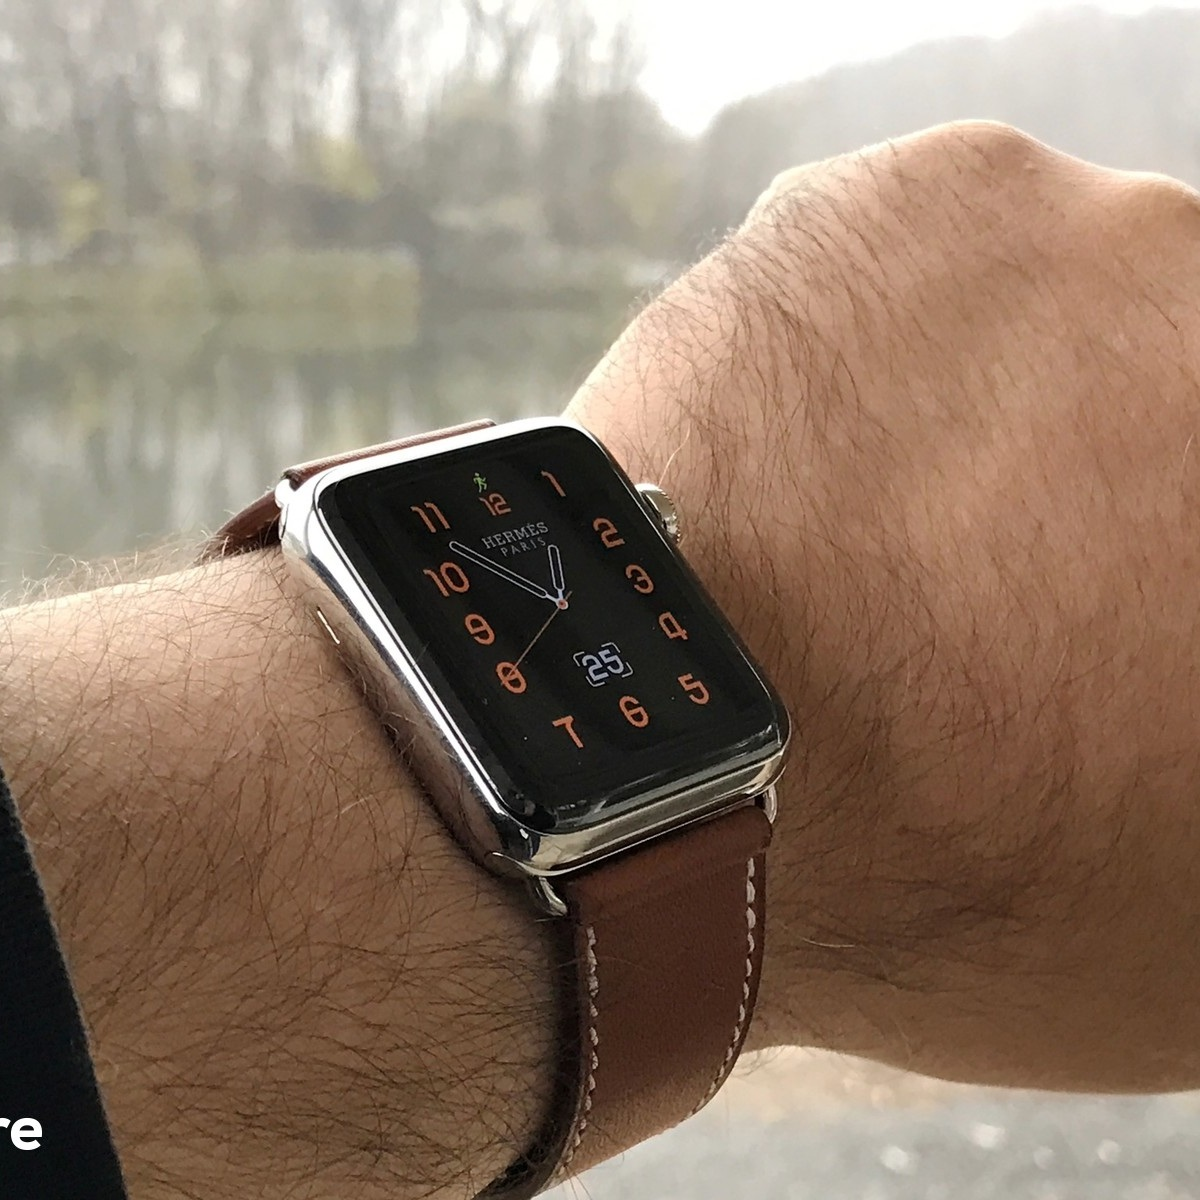 Fall down with Apple Watch